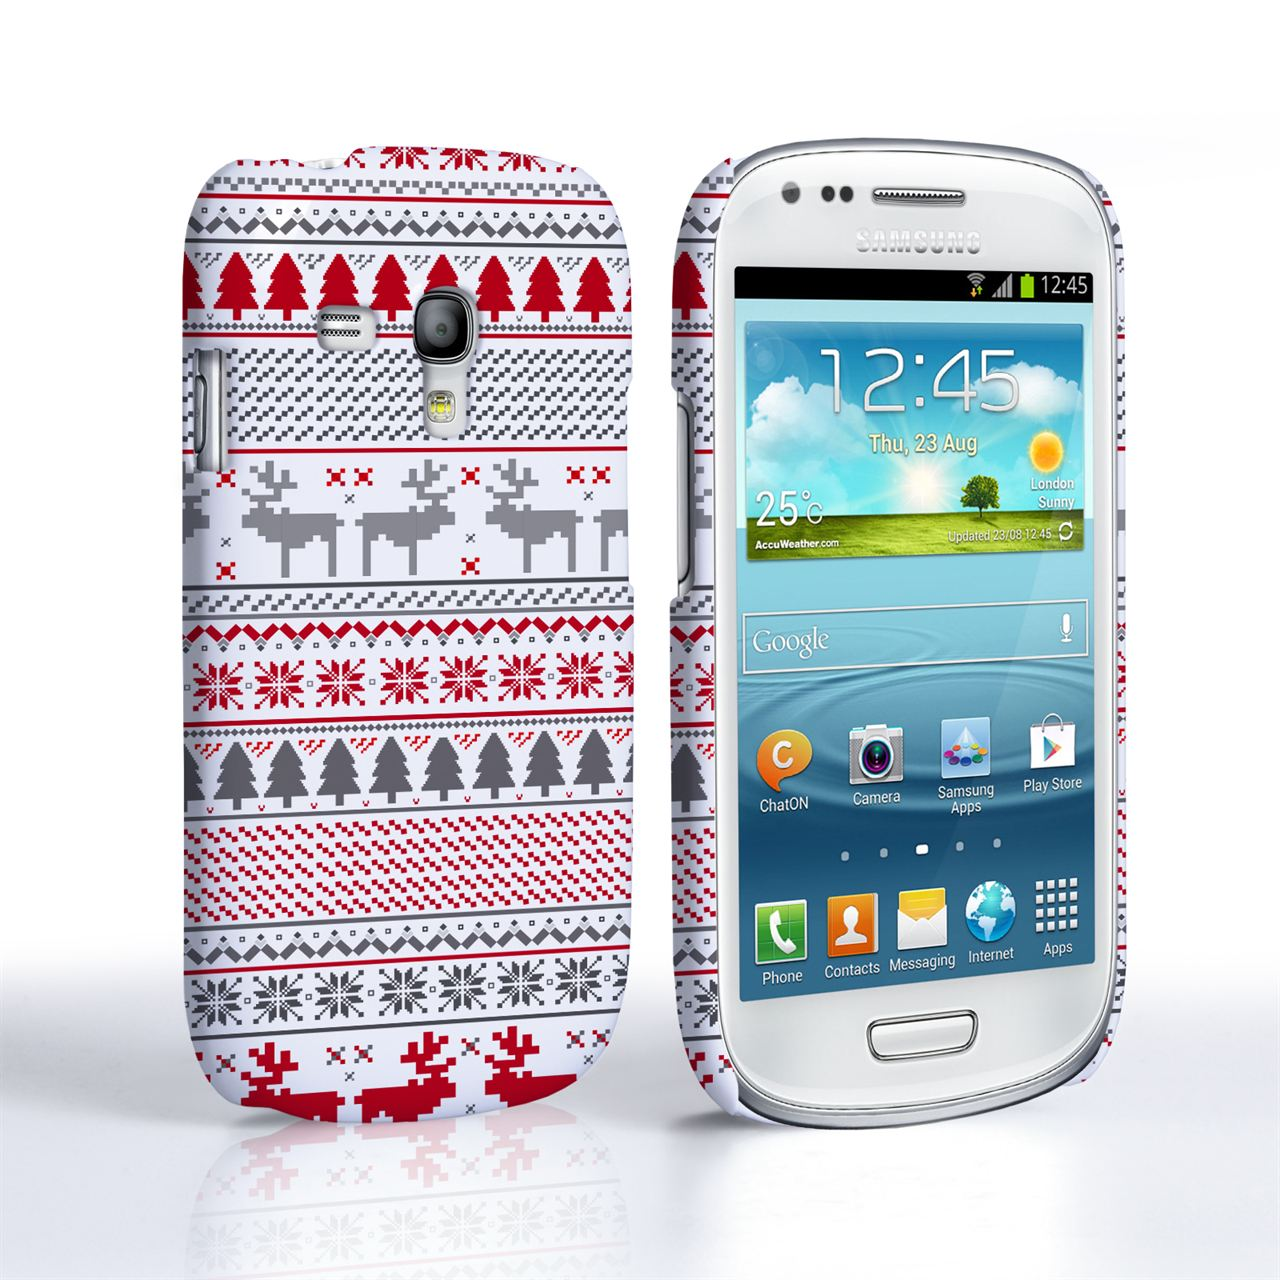 Samsung Galaxy S3 Mini Reindeer Christmas Jumper Case